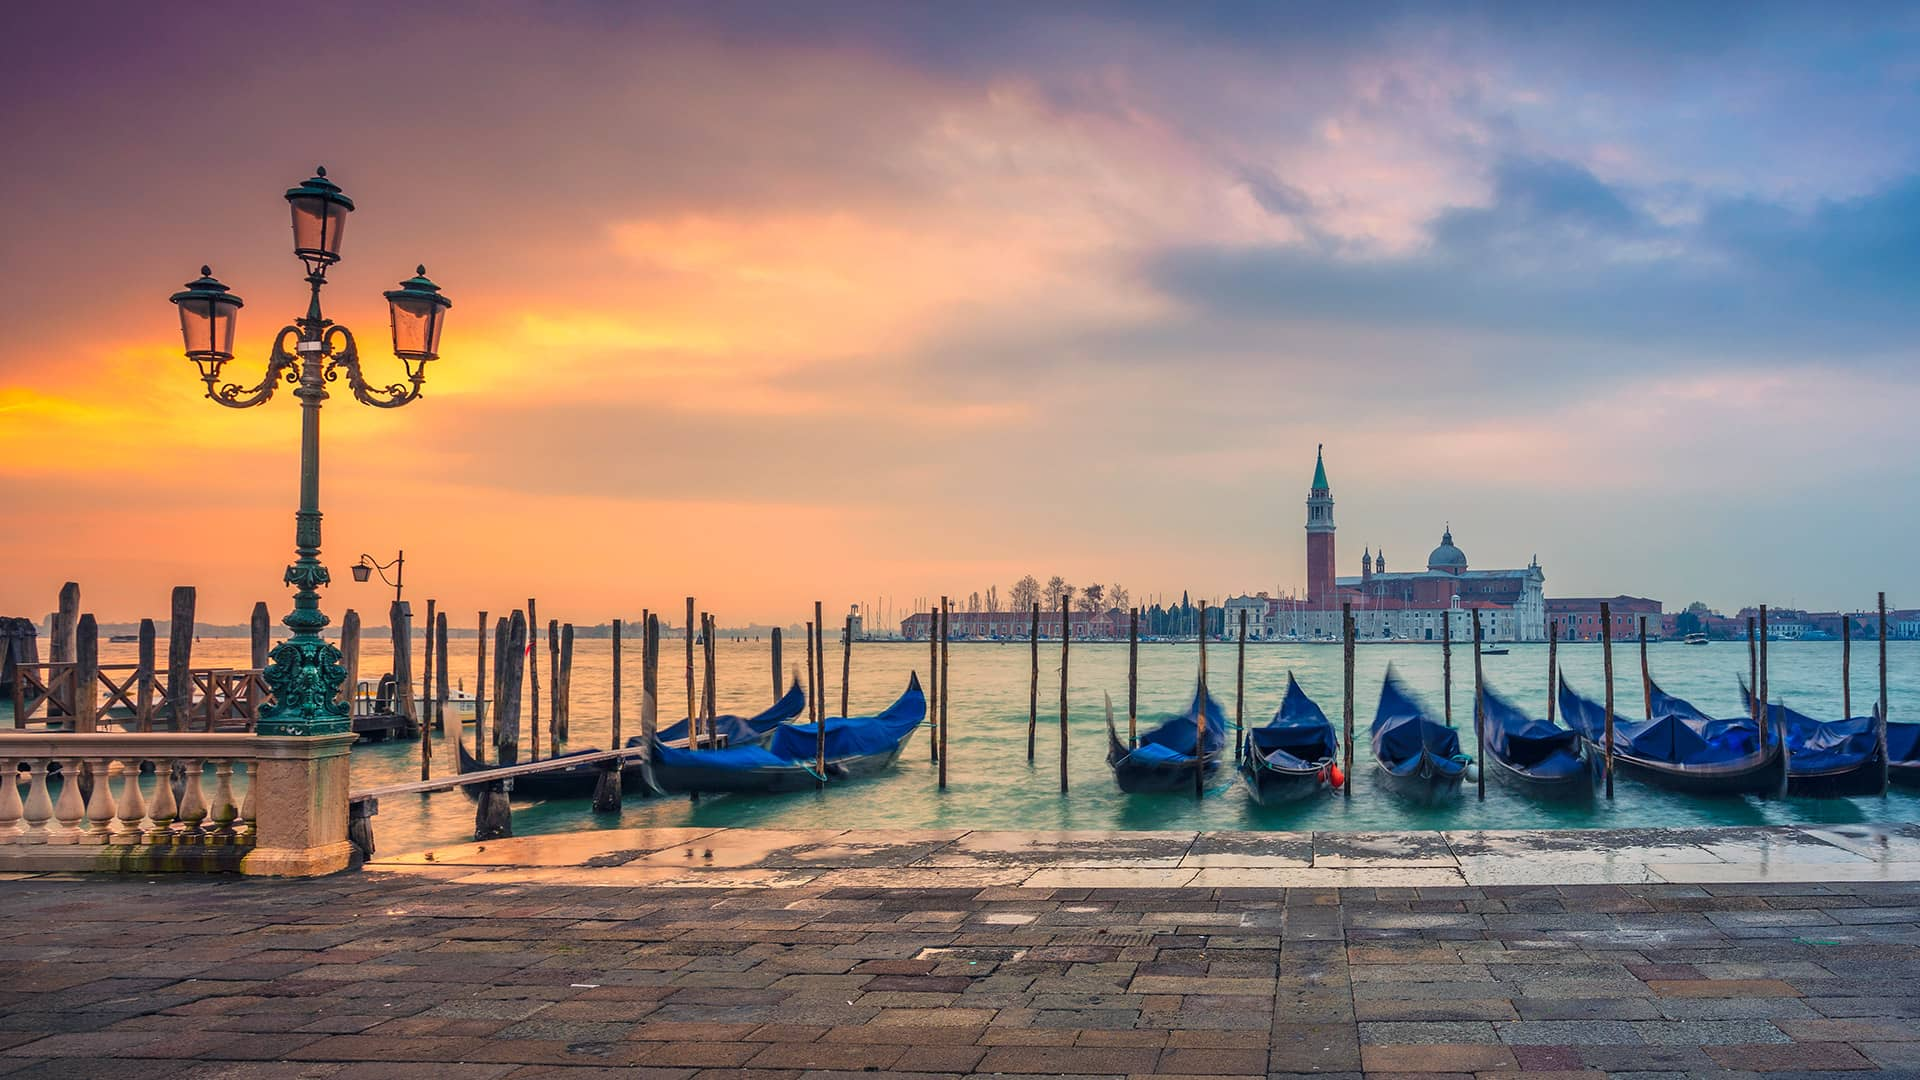 Venice gondolas on grand canal